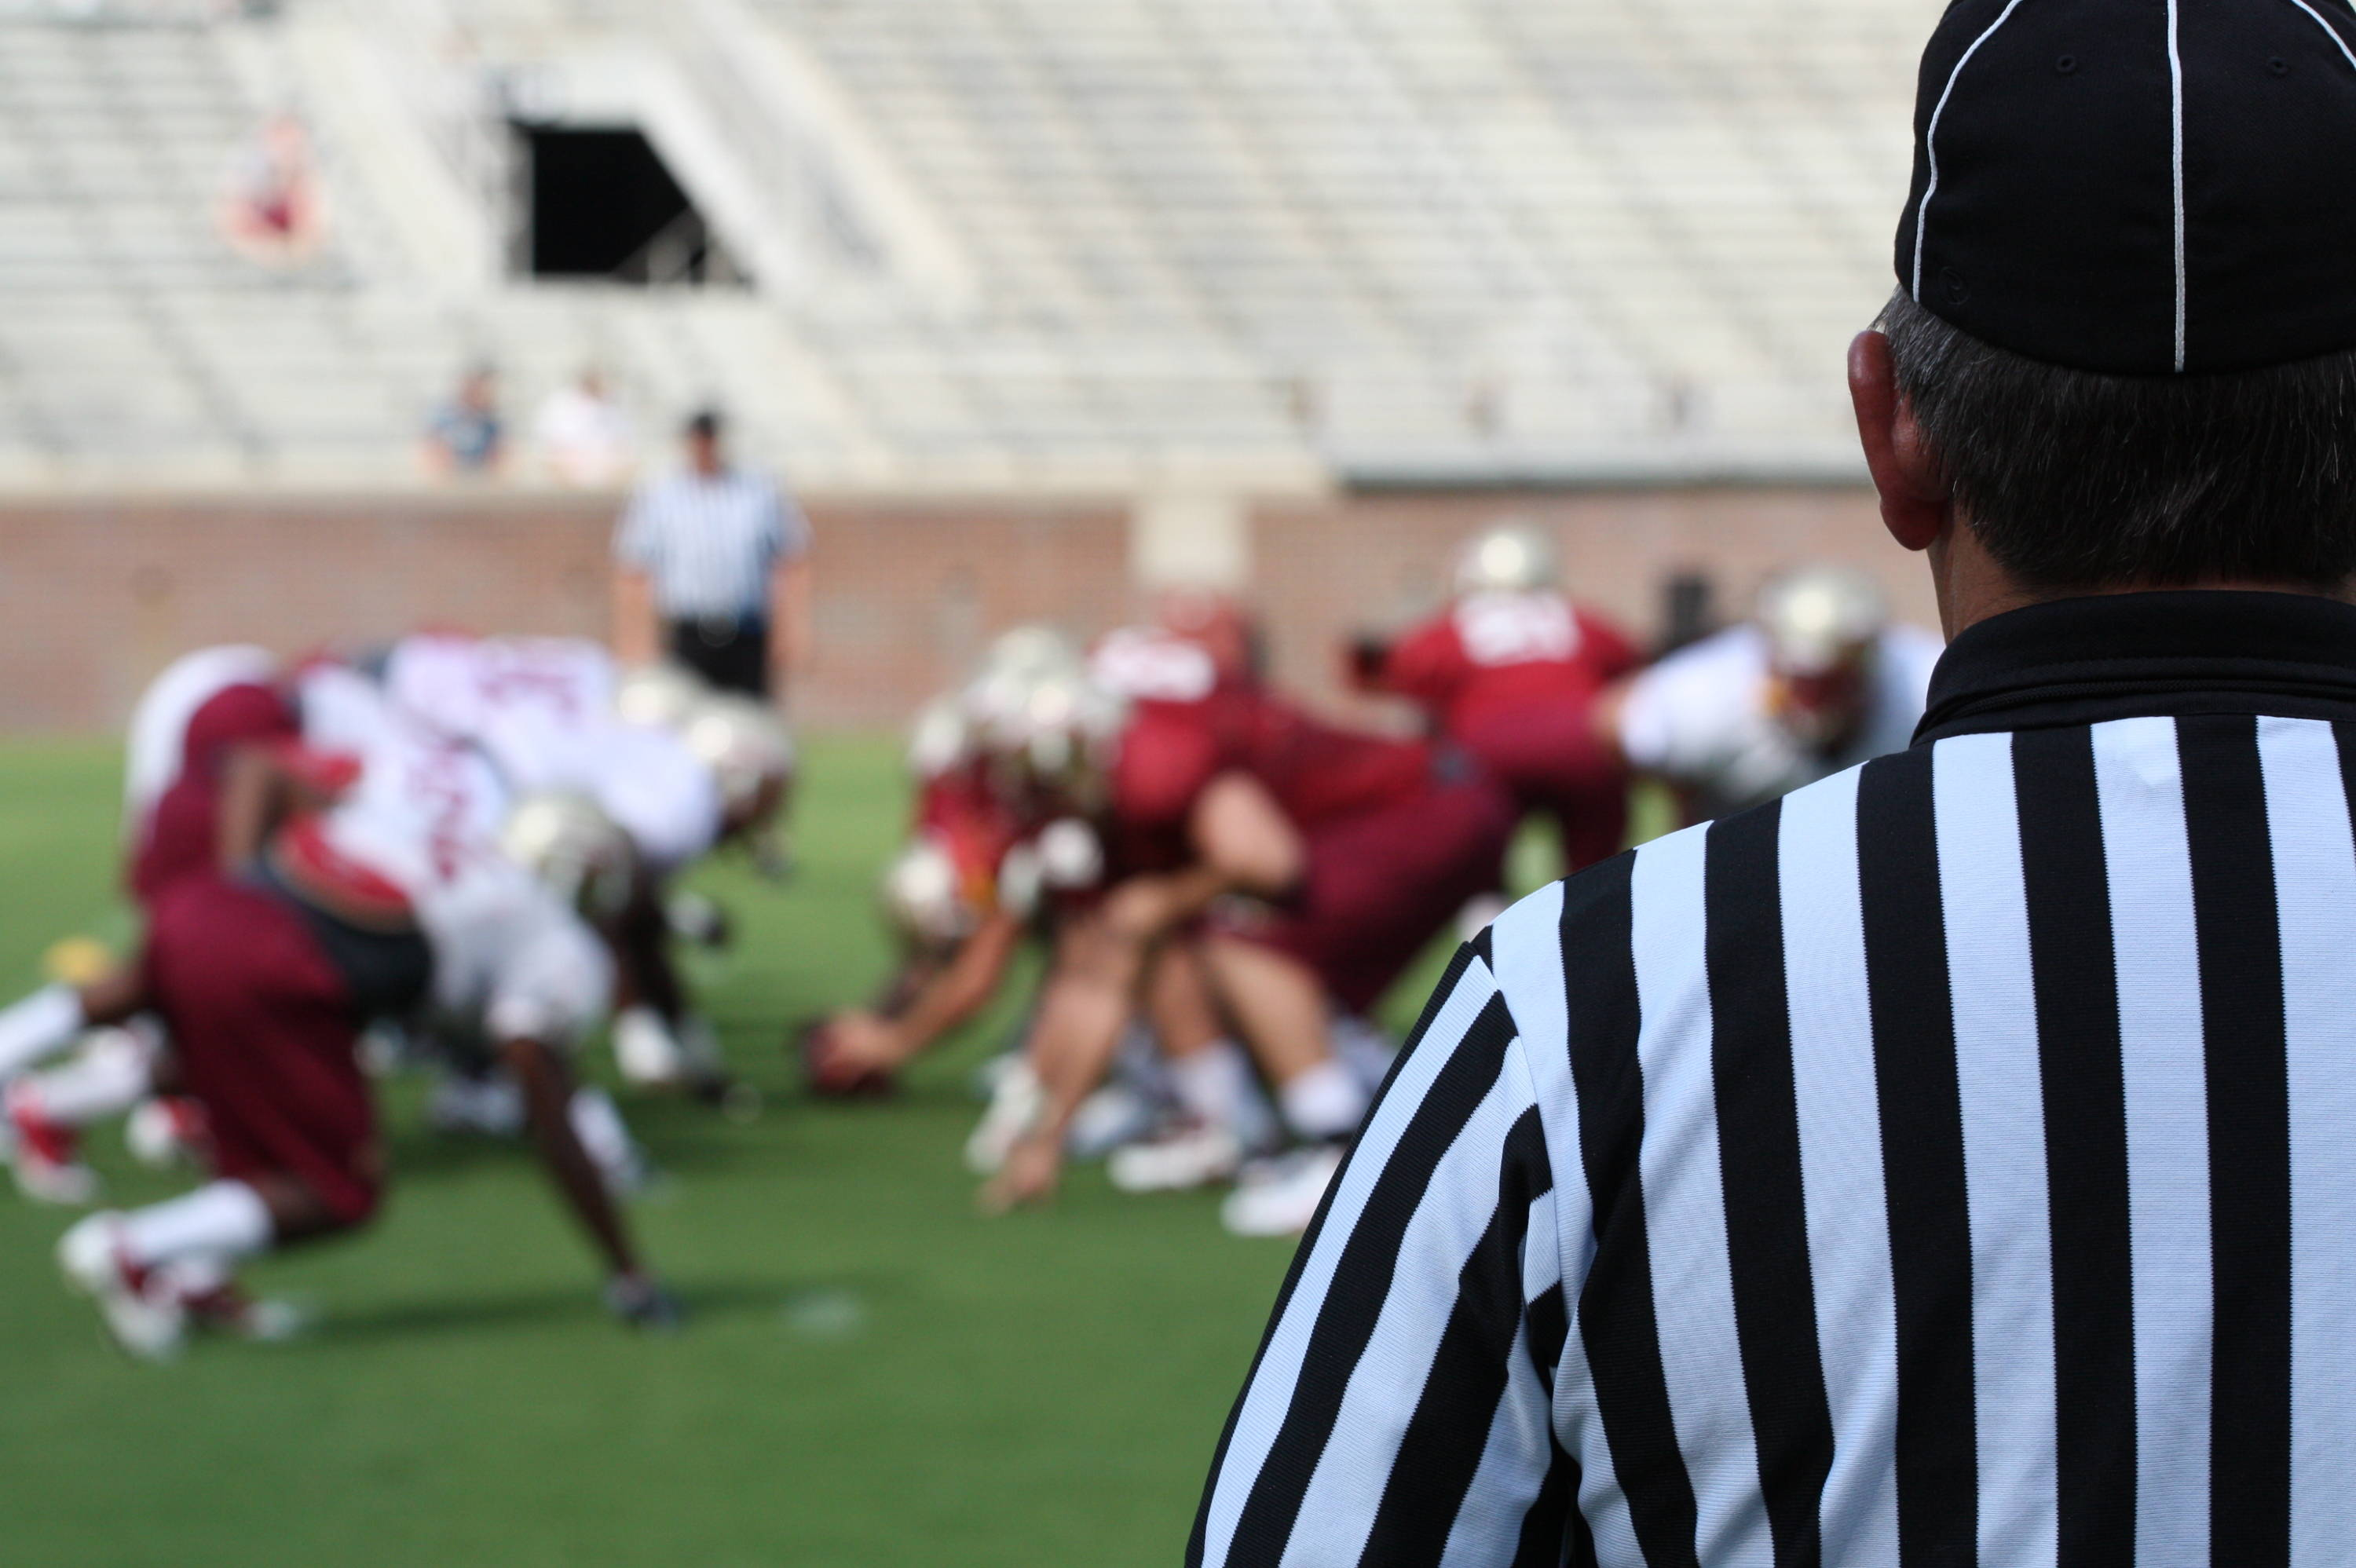 The referees view from Sunday's practice.